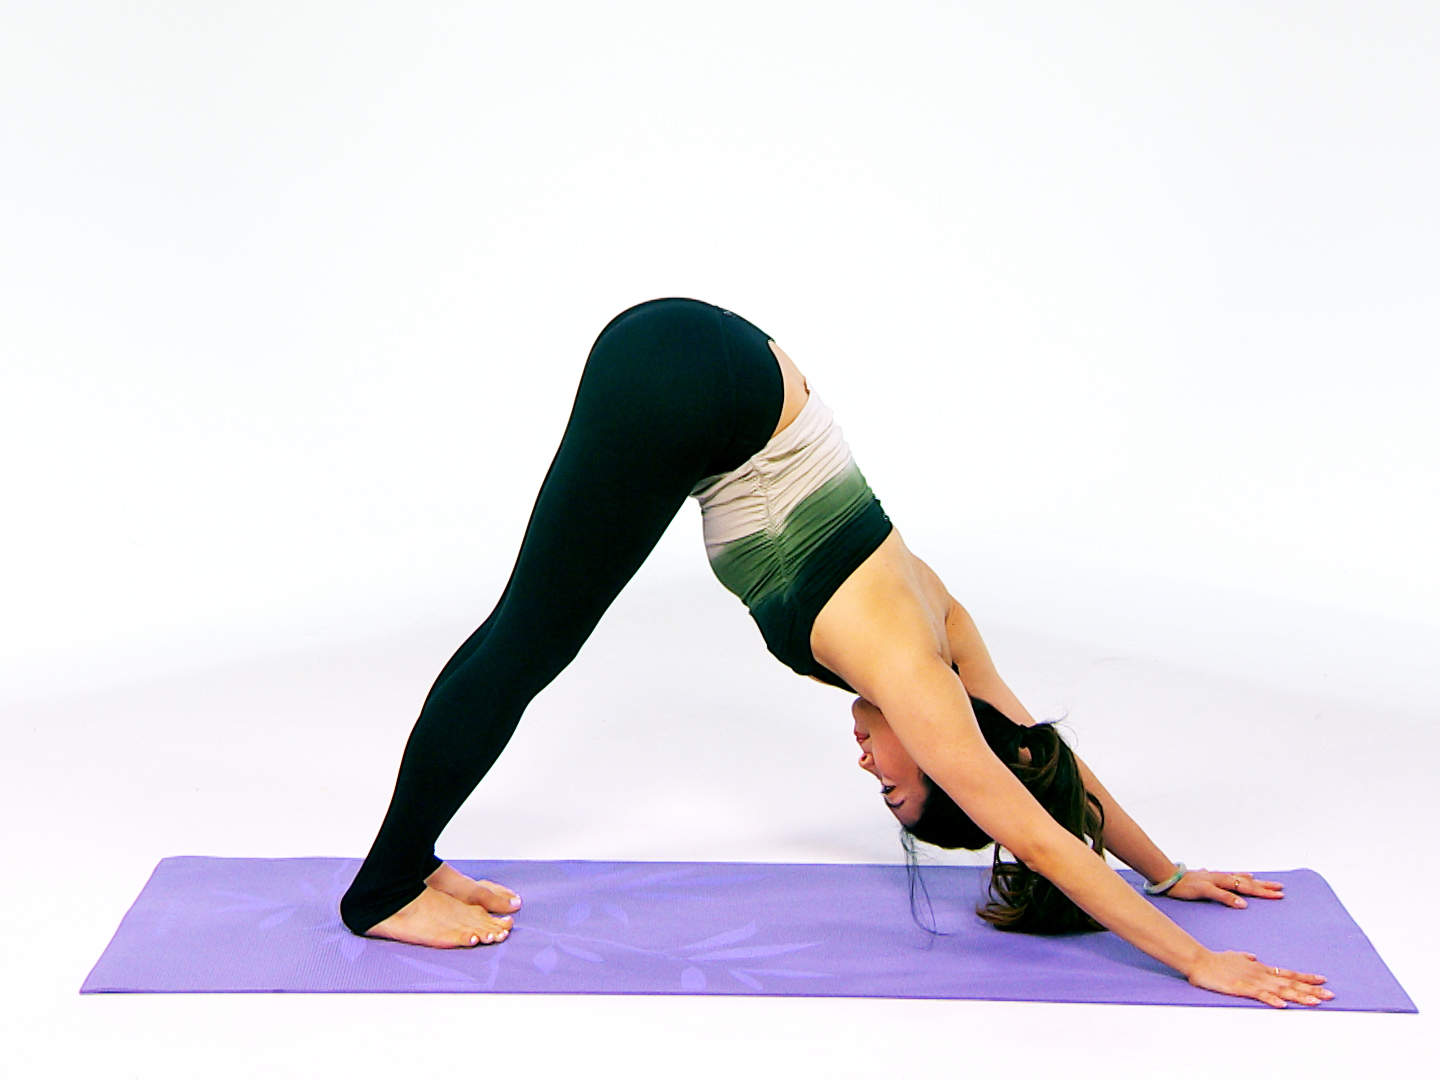 These Are the Yoga Poses Everyone Does Wrong - Health